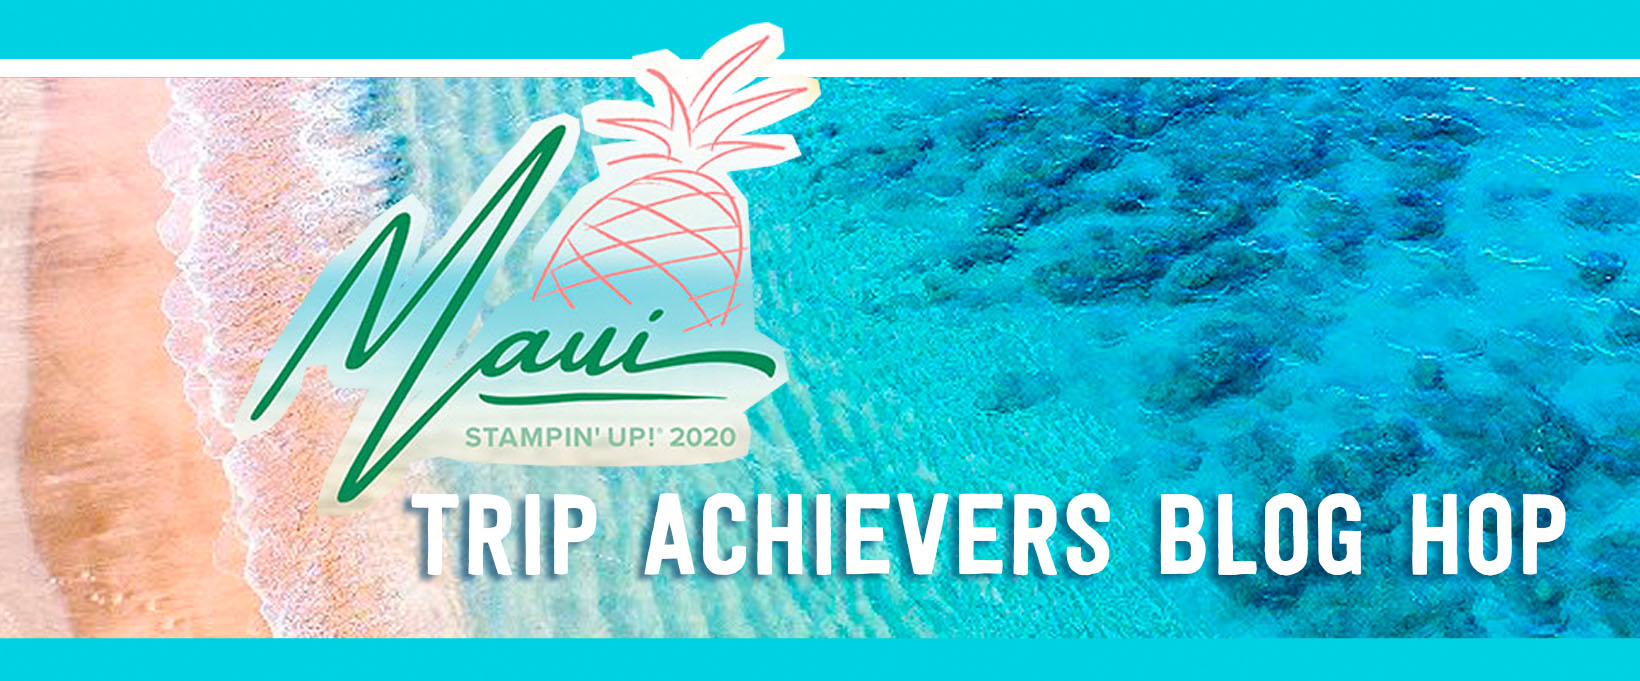 stampin up 2020 maui incentive trip, achiever, wendy lee, #creativeleeyours, creatively yours, creative-lee yours, demonstrator rewards, travel, hawaii, business opportunity, DIY, SU, rubber stamps,